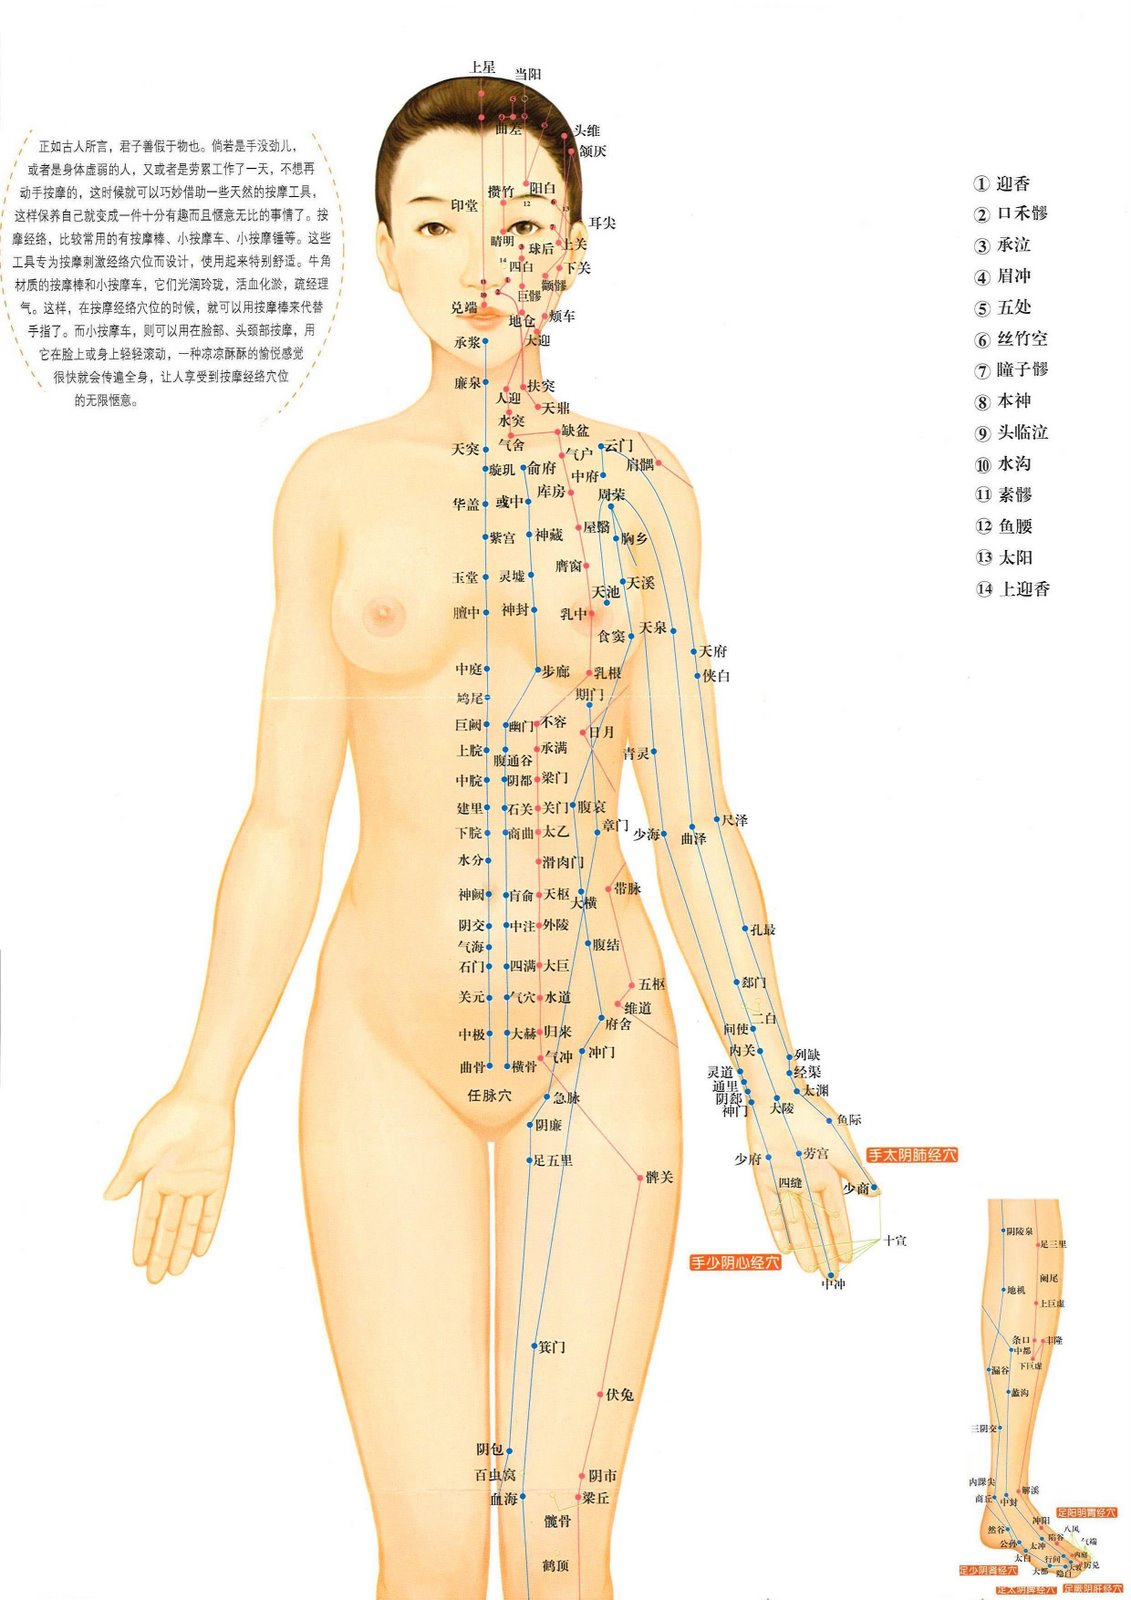 acupressure diagram of pressure points 02 chevy cavalier radio wiring 1000 43 images about benefits qi gong on pinterest